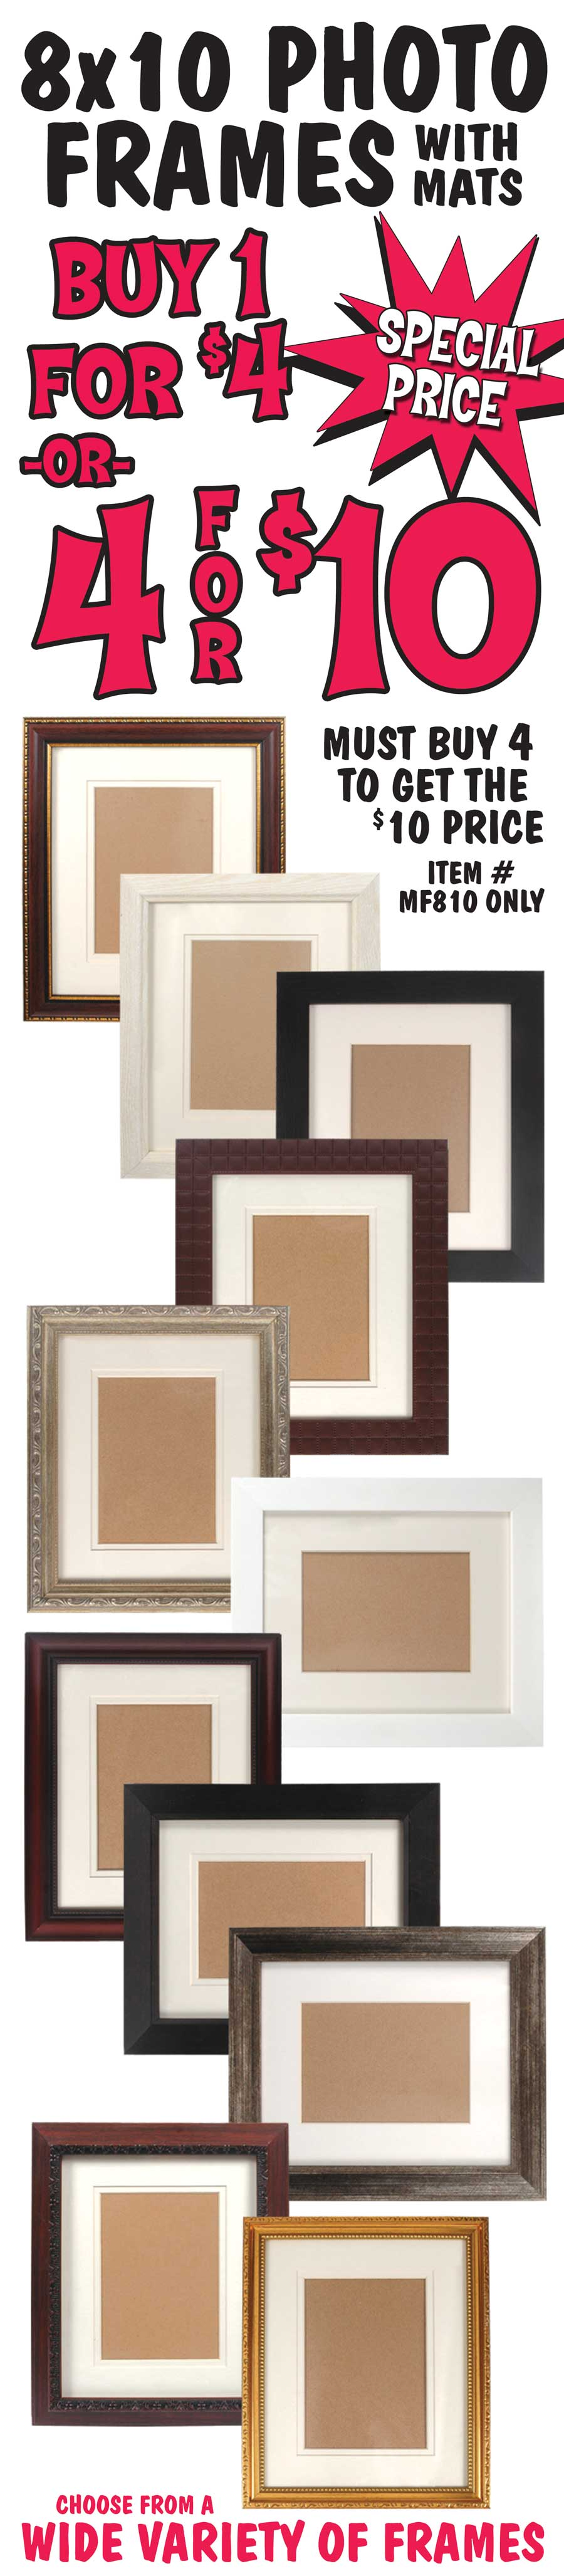 Select 8x10 Photo Frames with mats - 1 for $4 or 4 for $10